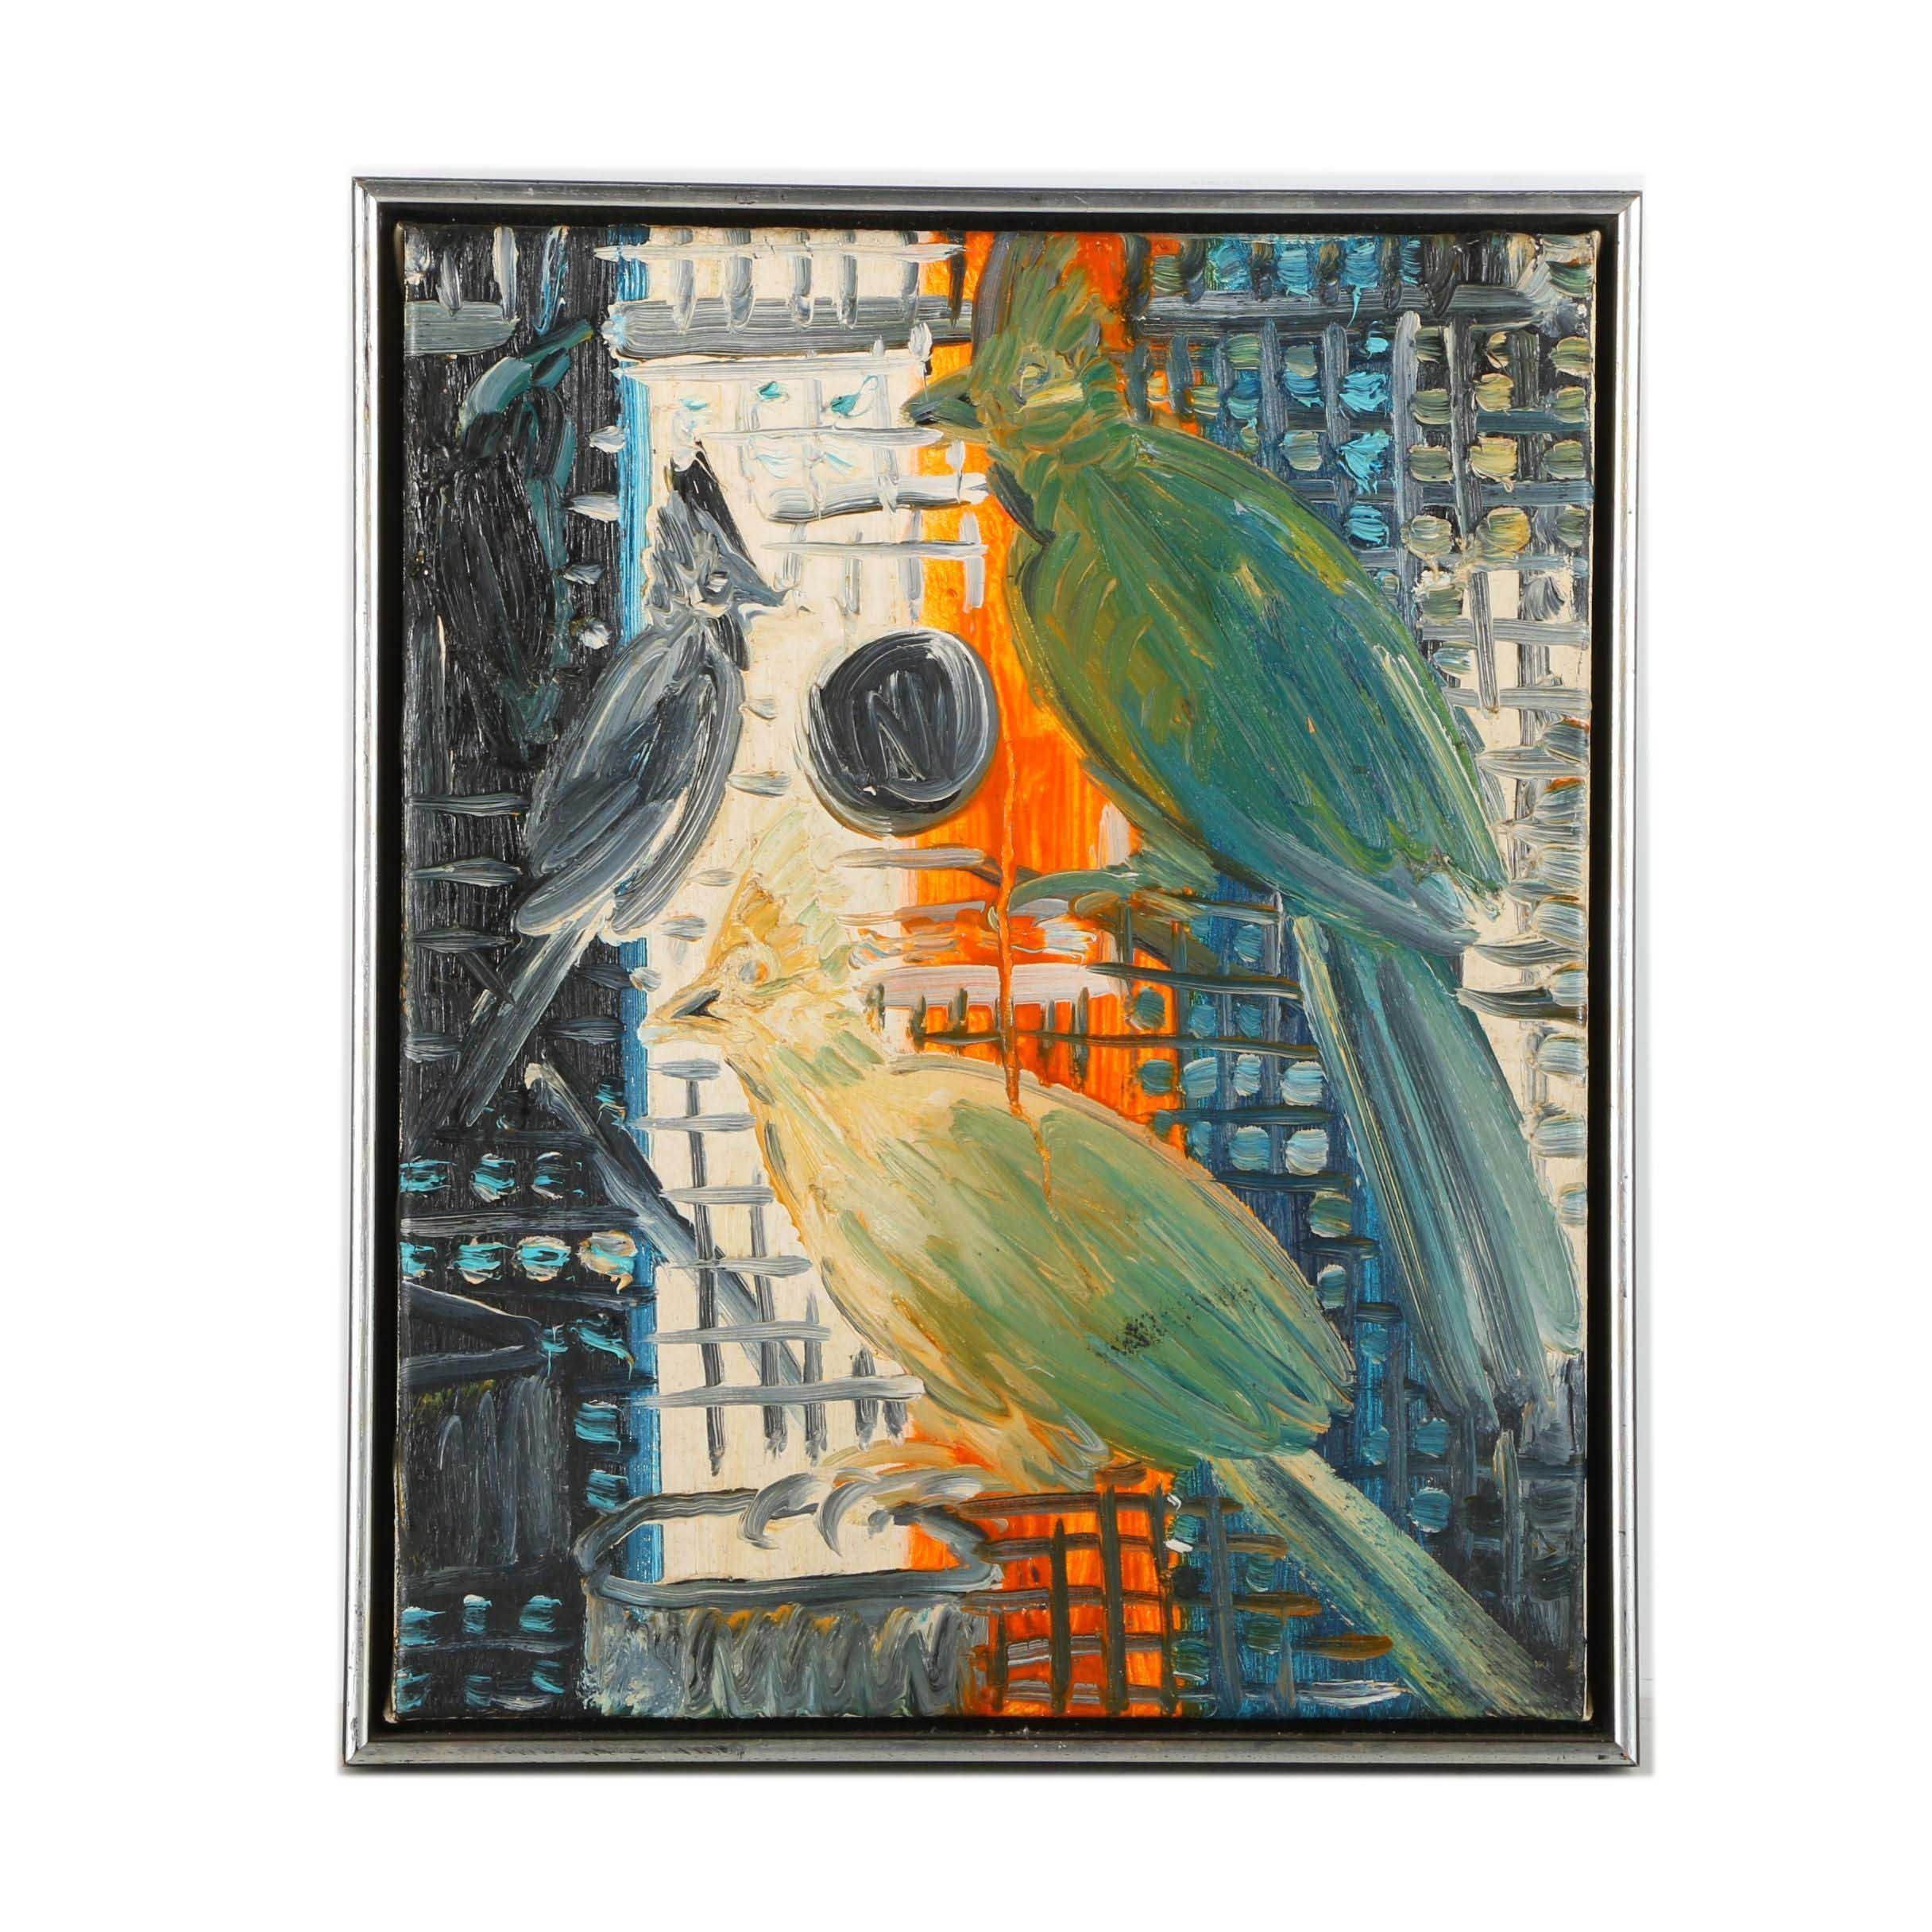 Hunt Slonem Original 1988 Oil on Canvas of Three Birds in a Cage